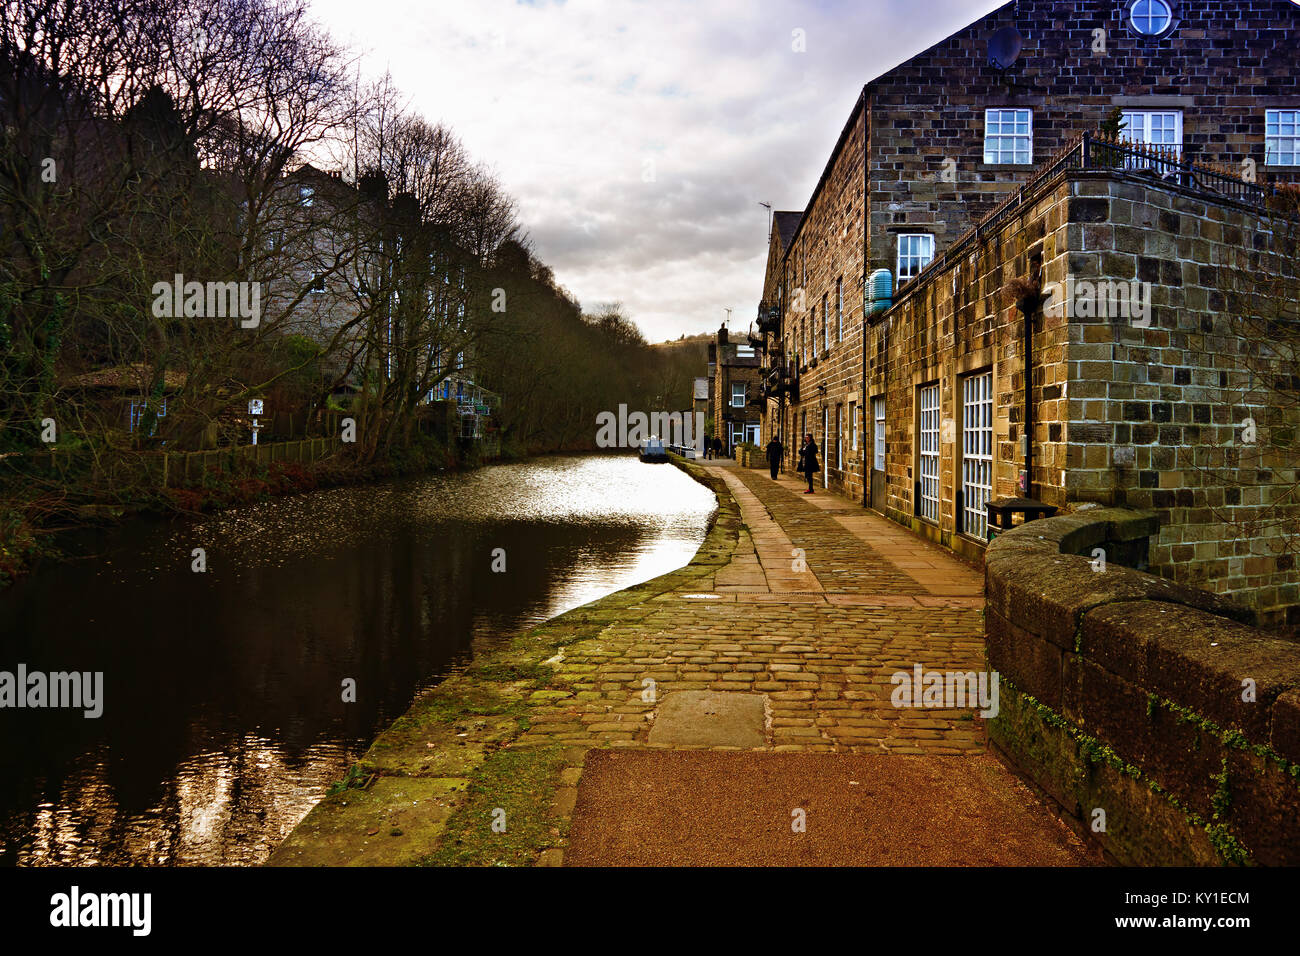 Towpath and barge on the Rochdale Canal at Sowerby Bridge West Yorkshire UK - Stock Image